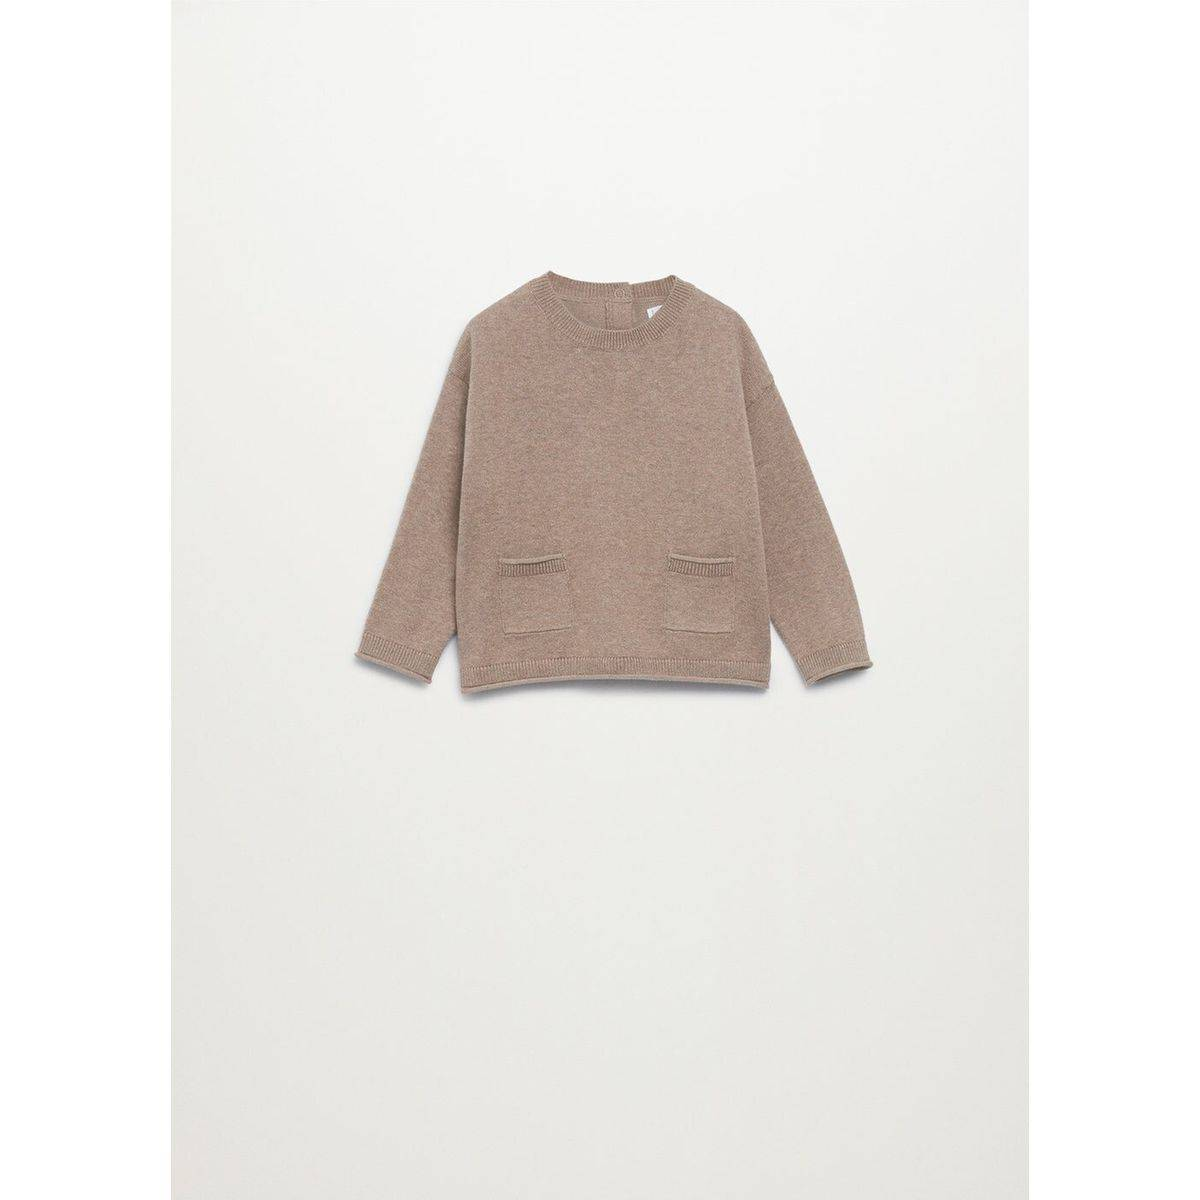 Pull-over en maille poches